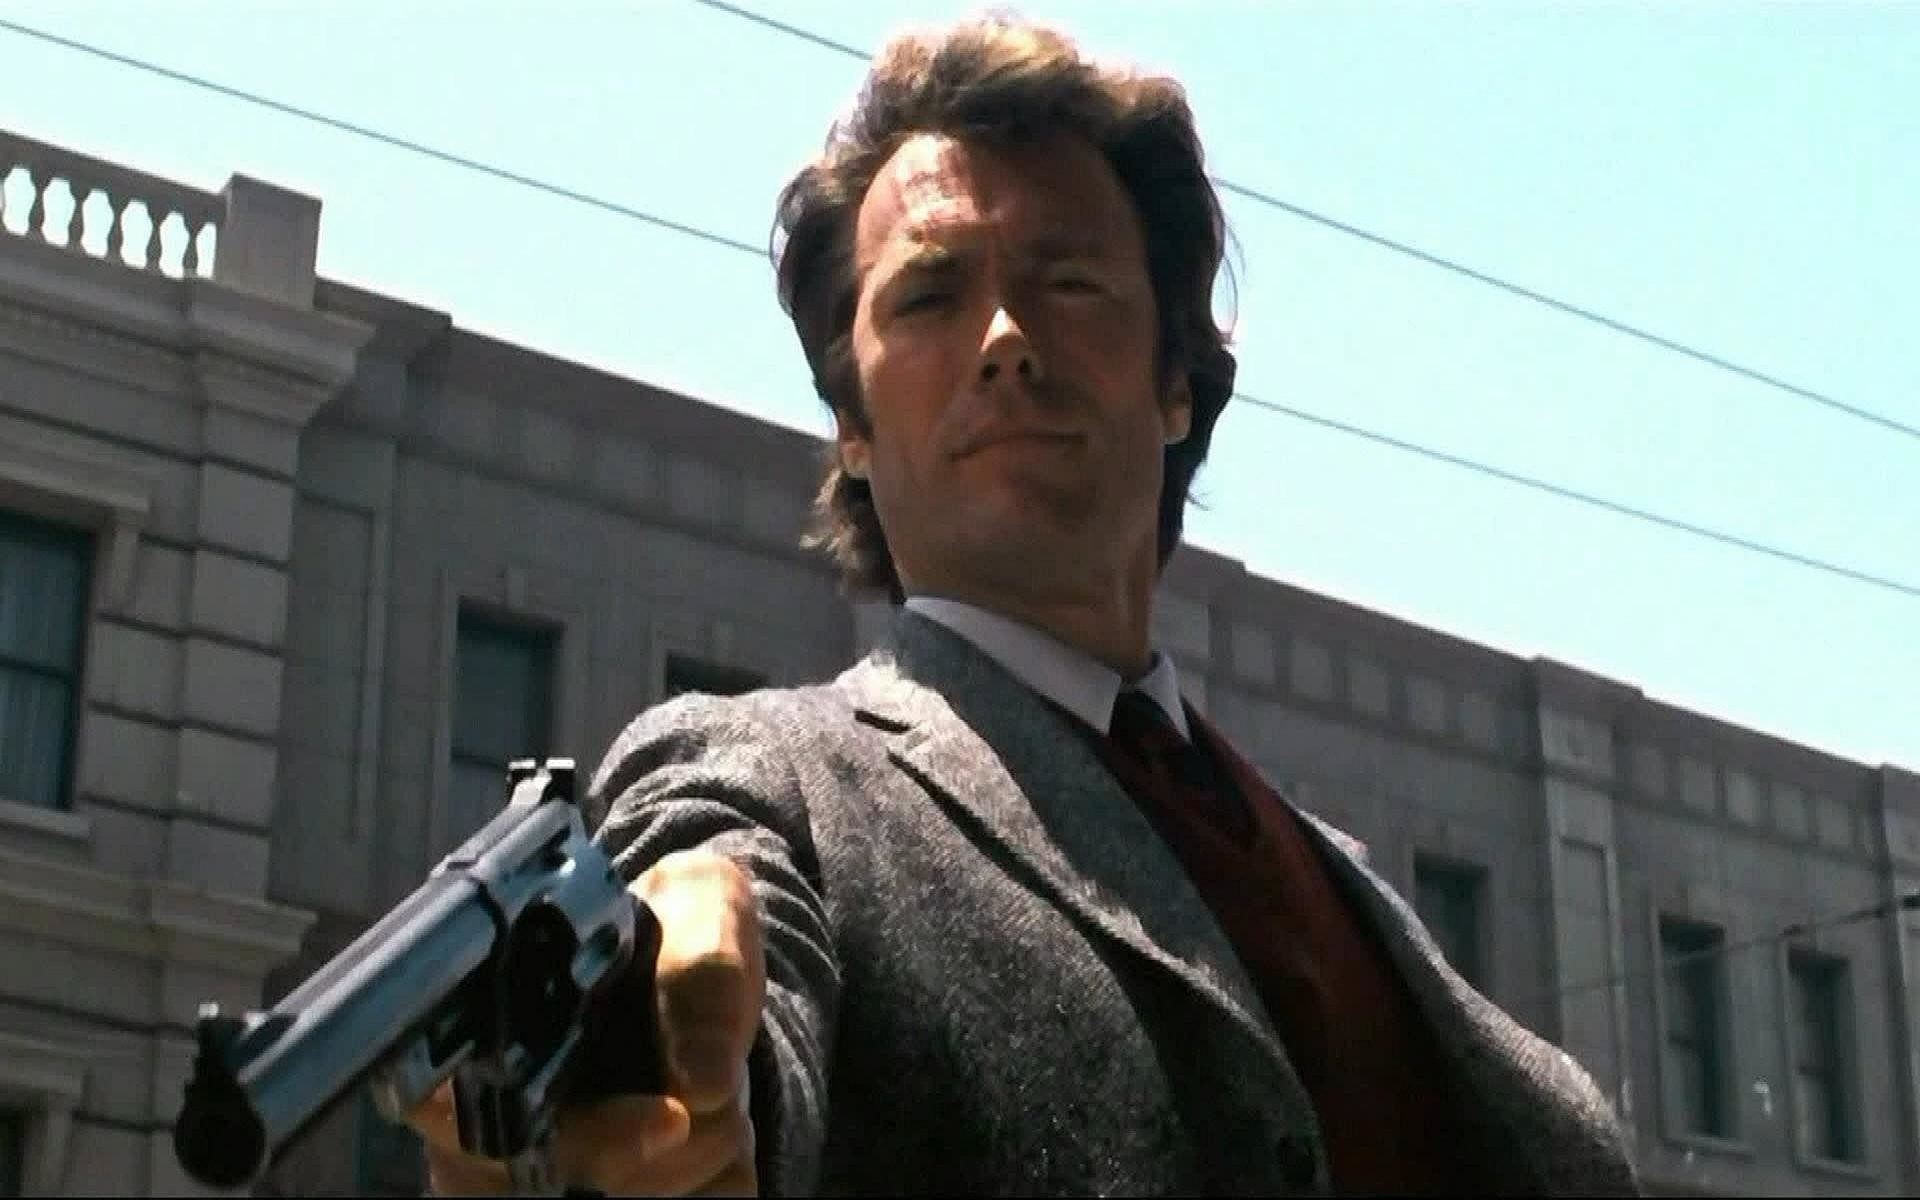 1920x1200 dirty harry wallpaper pictures jpg  1920x1080 dirty harry wallpaper  pictures